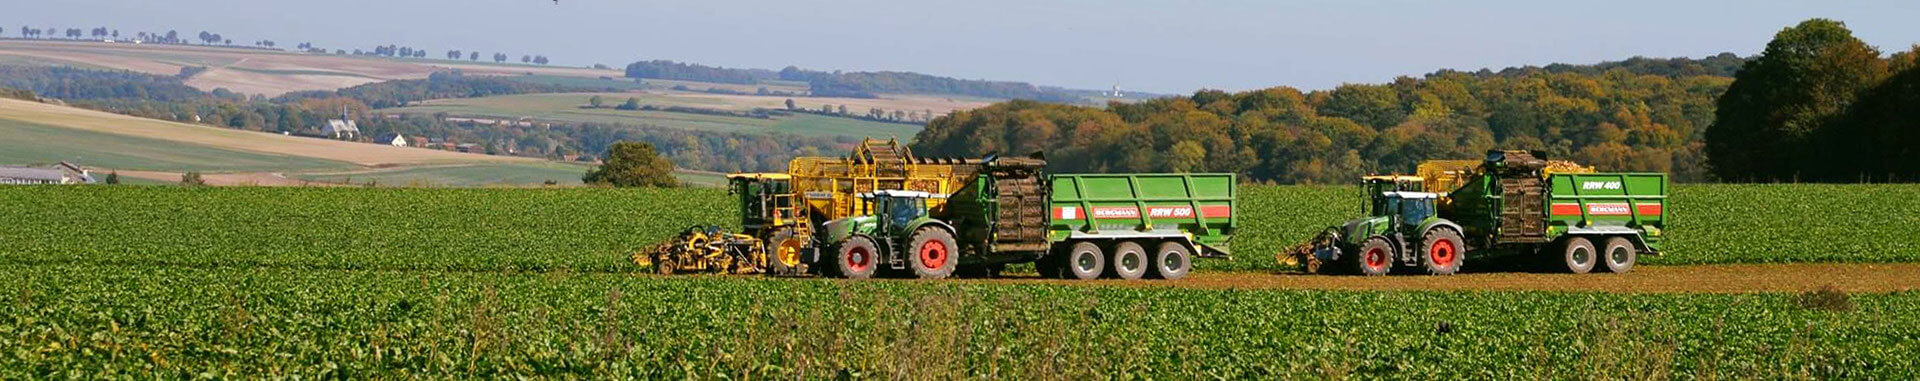 Sugar beet chasers working in field countryside beet harvest